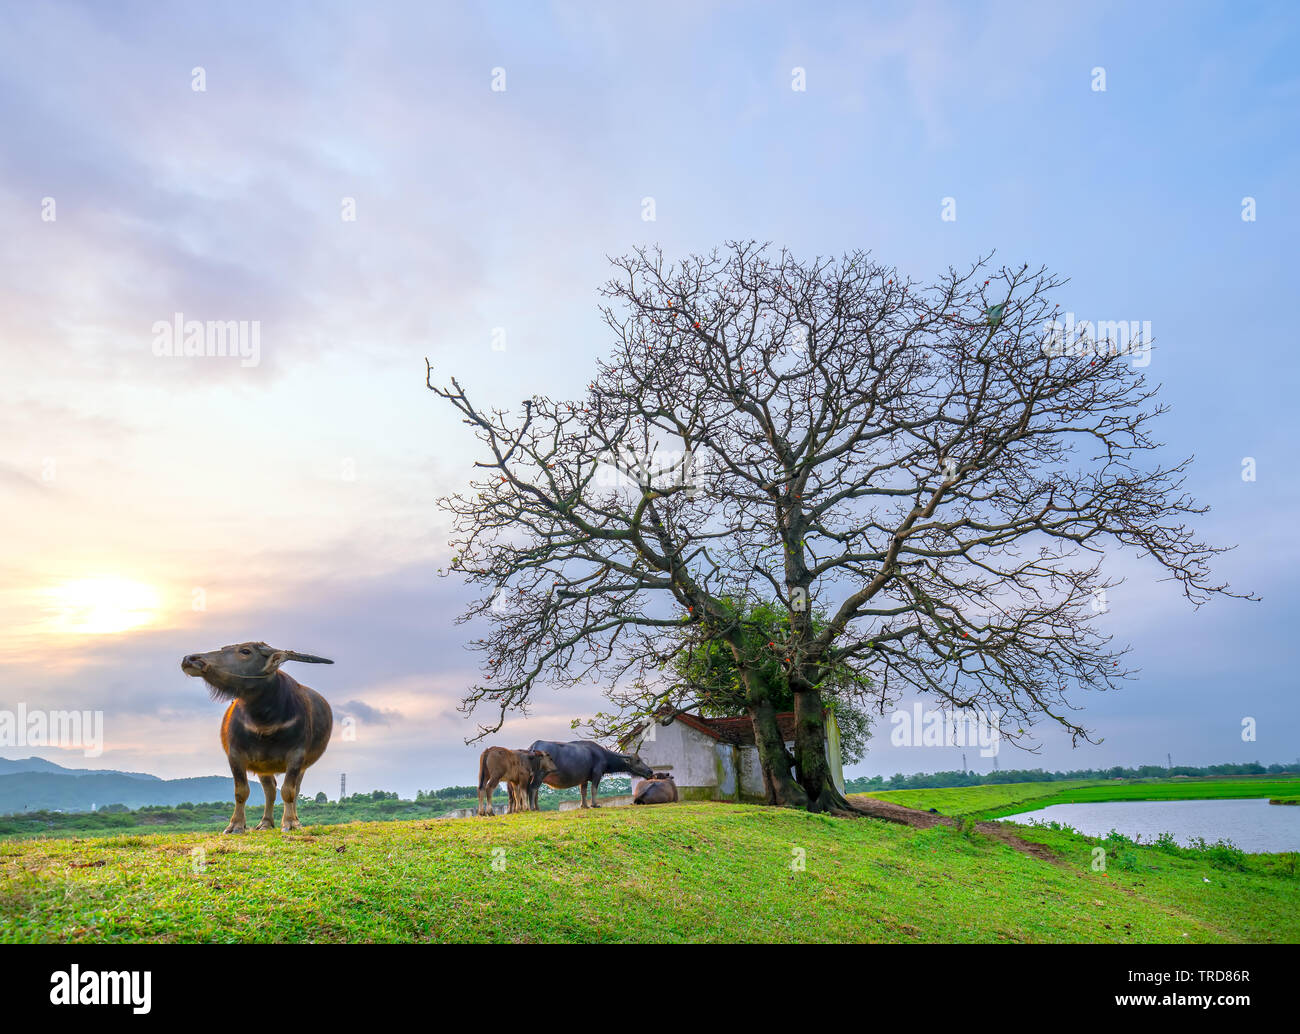 Buffalo is relaxing, eating grass next to the shrine have multi centuries-old trees in rural Vietnam peaceful - Stock Image